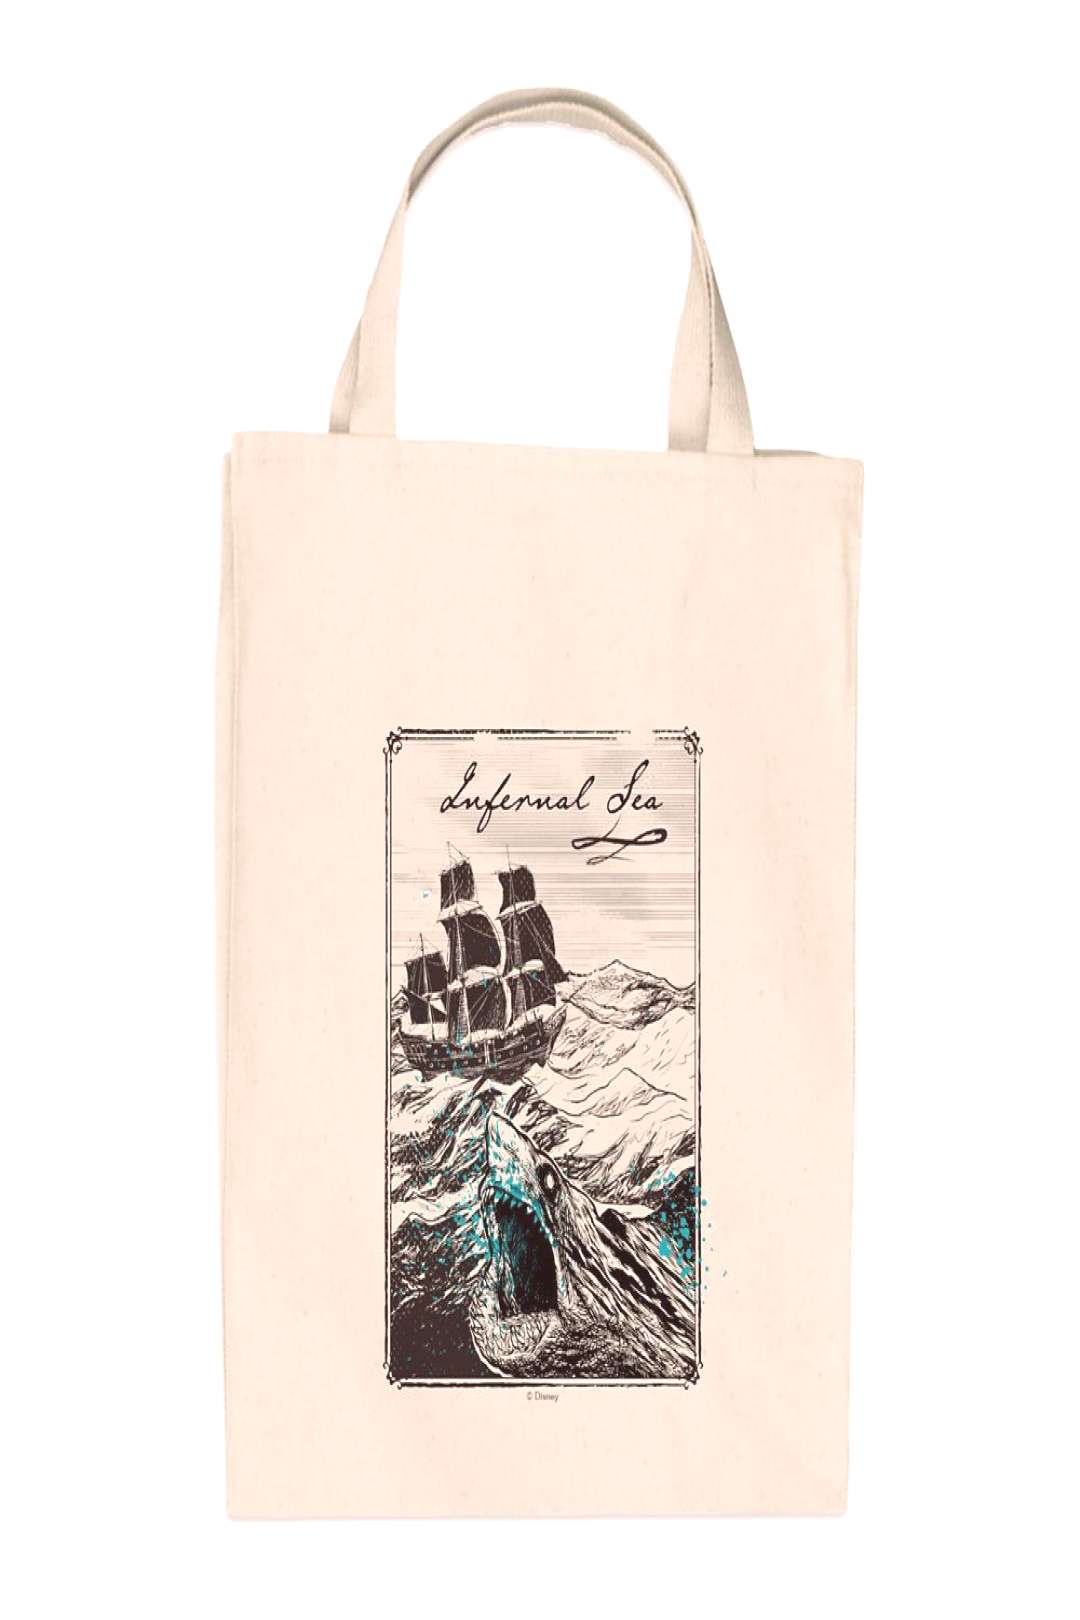 Infernal Sea Tote - Pirates of the Caribbean Dead Men Tell No Tales - Customizable shopDisney